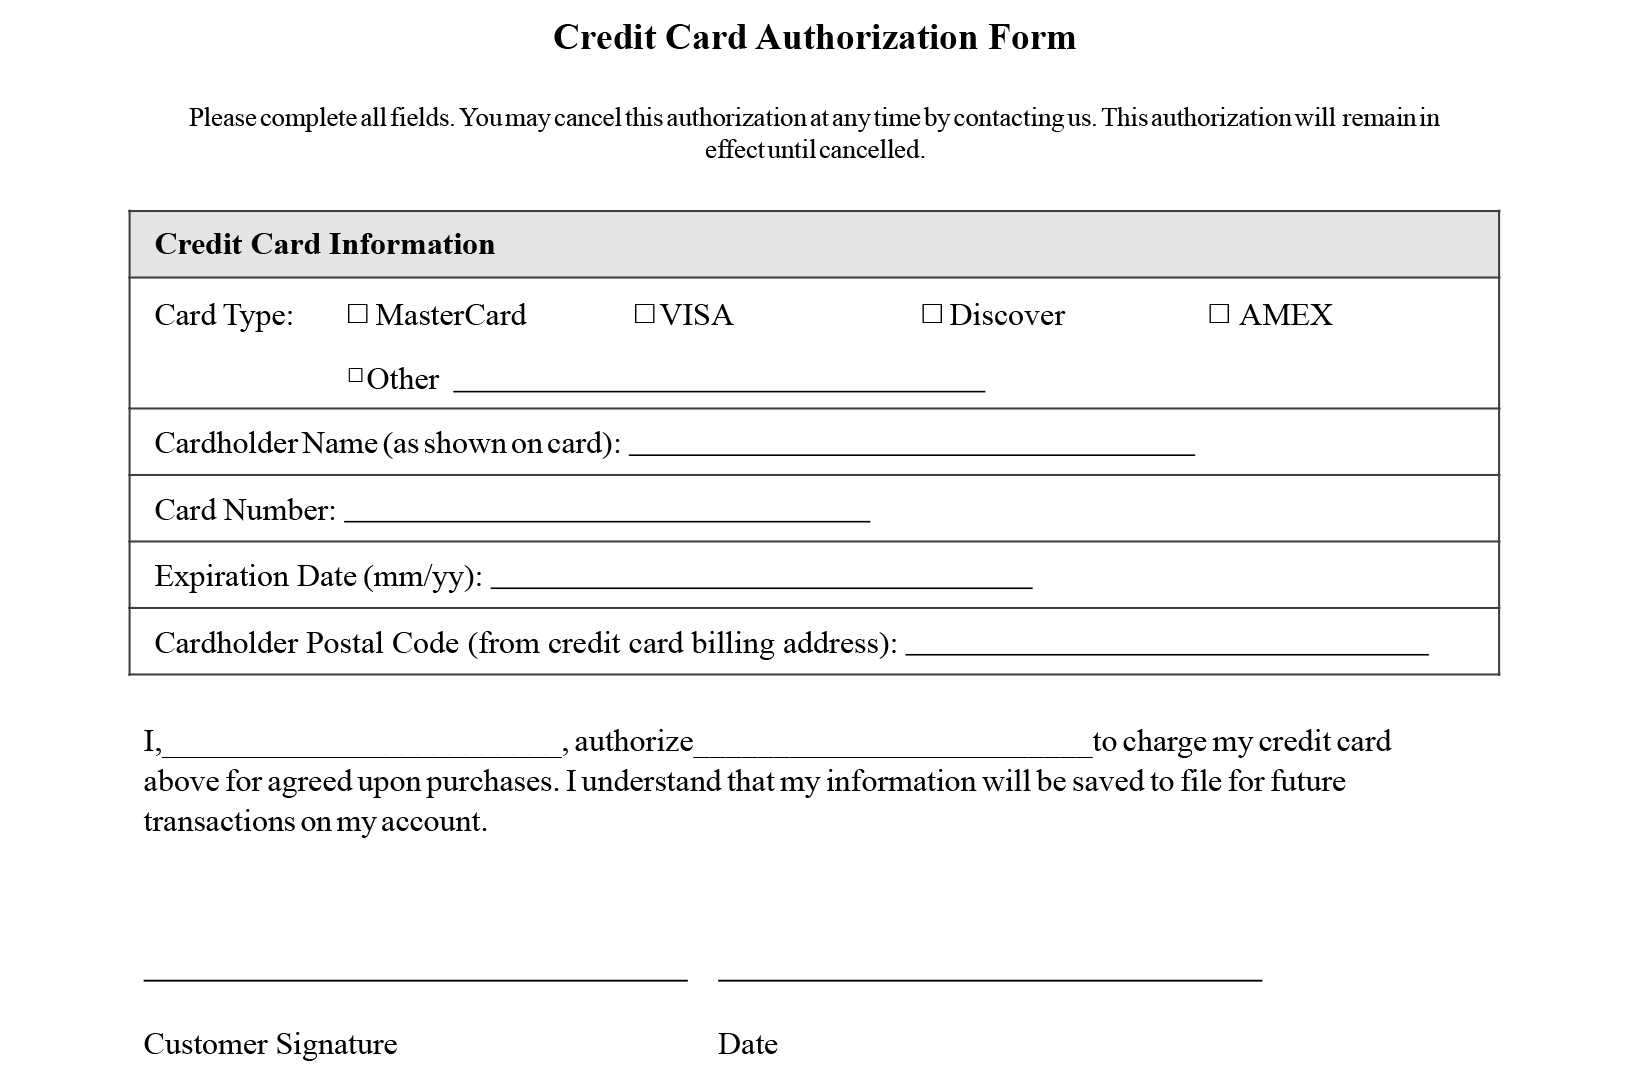 Card Authorization Form - Zohre.horizonconsulting.co With Regard To Credit Card Authorization Form Template Word